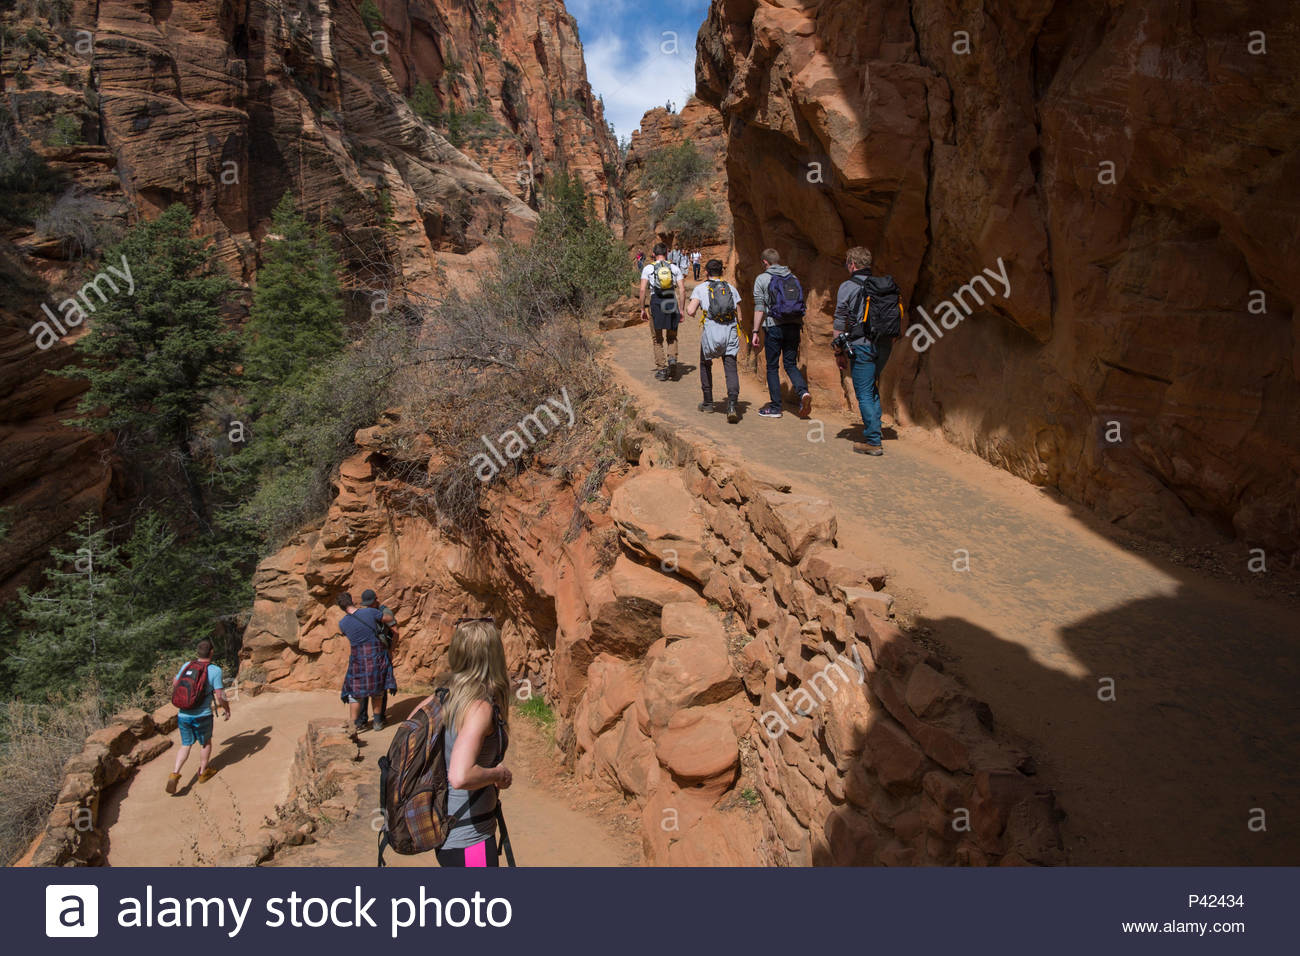 Walter's Wiggles portion of the West Rim Trail consisting of a series of 21 steep switchbacks carved into the sheer cliff face, Zion National Park, Wa Stock Photo